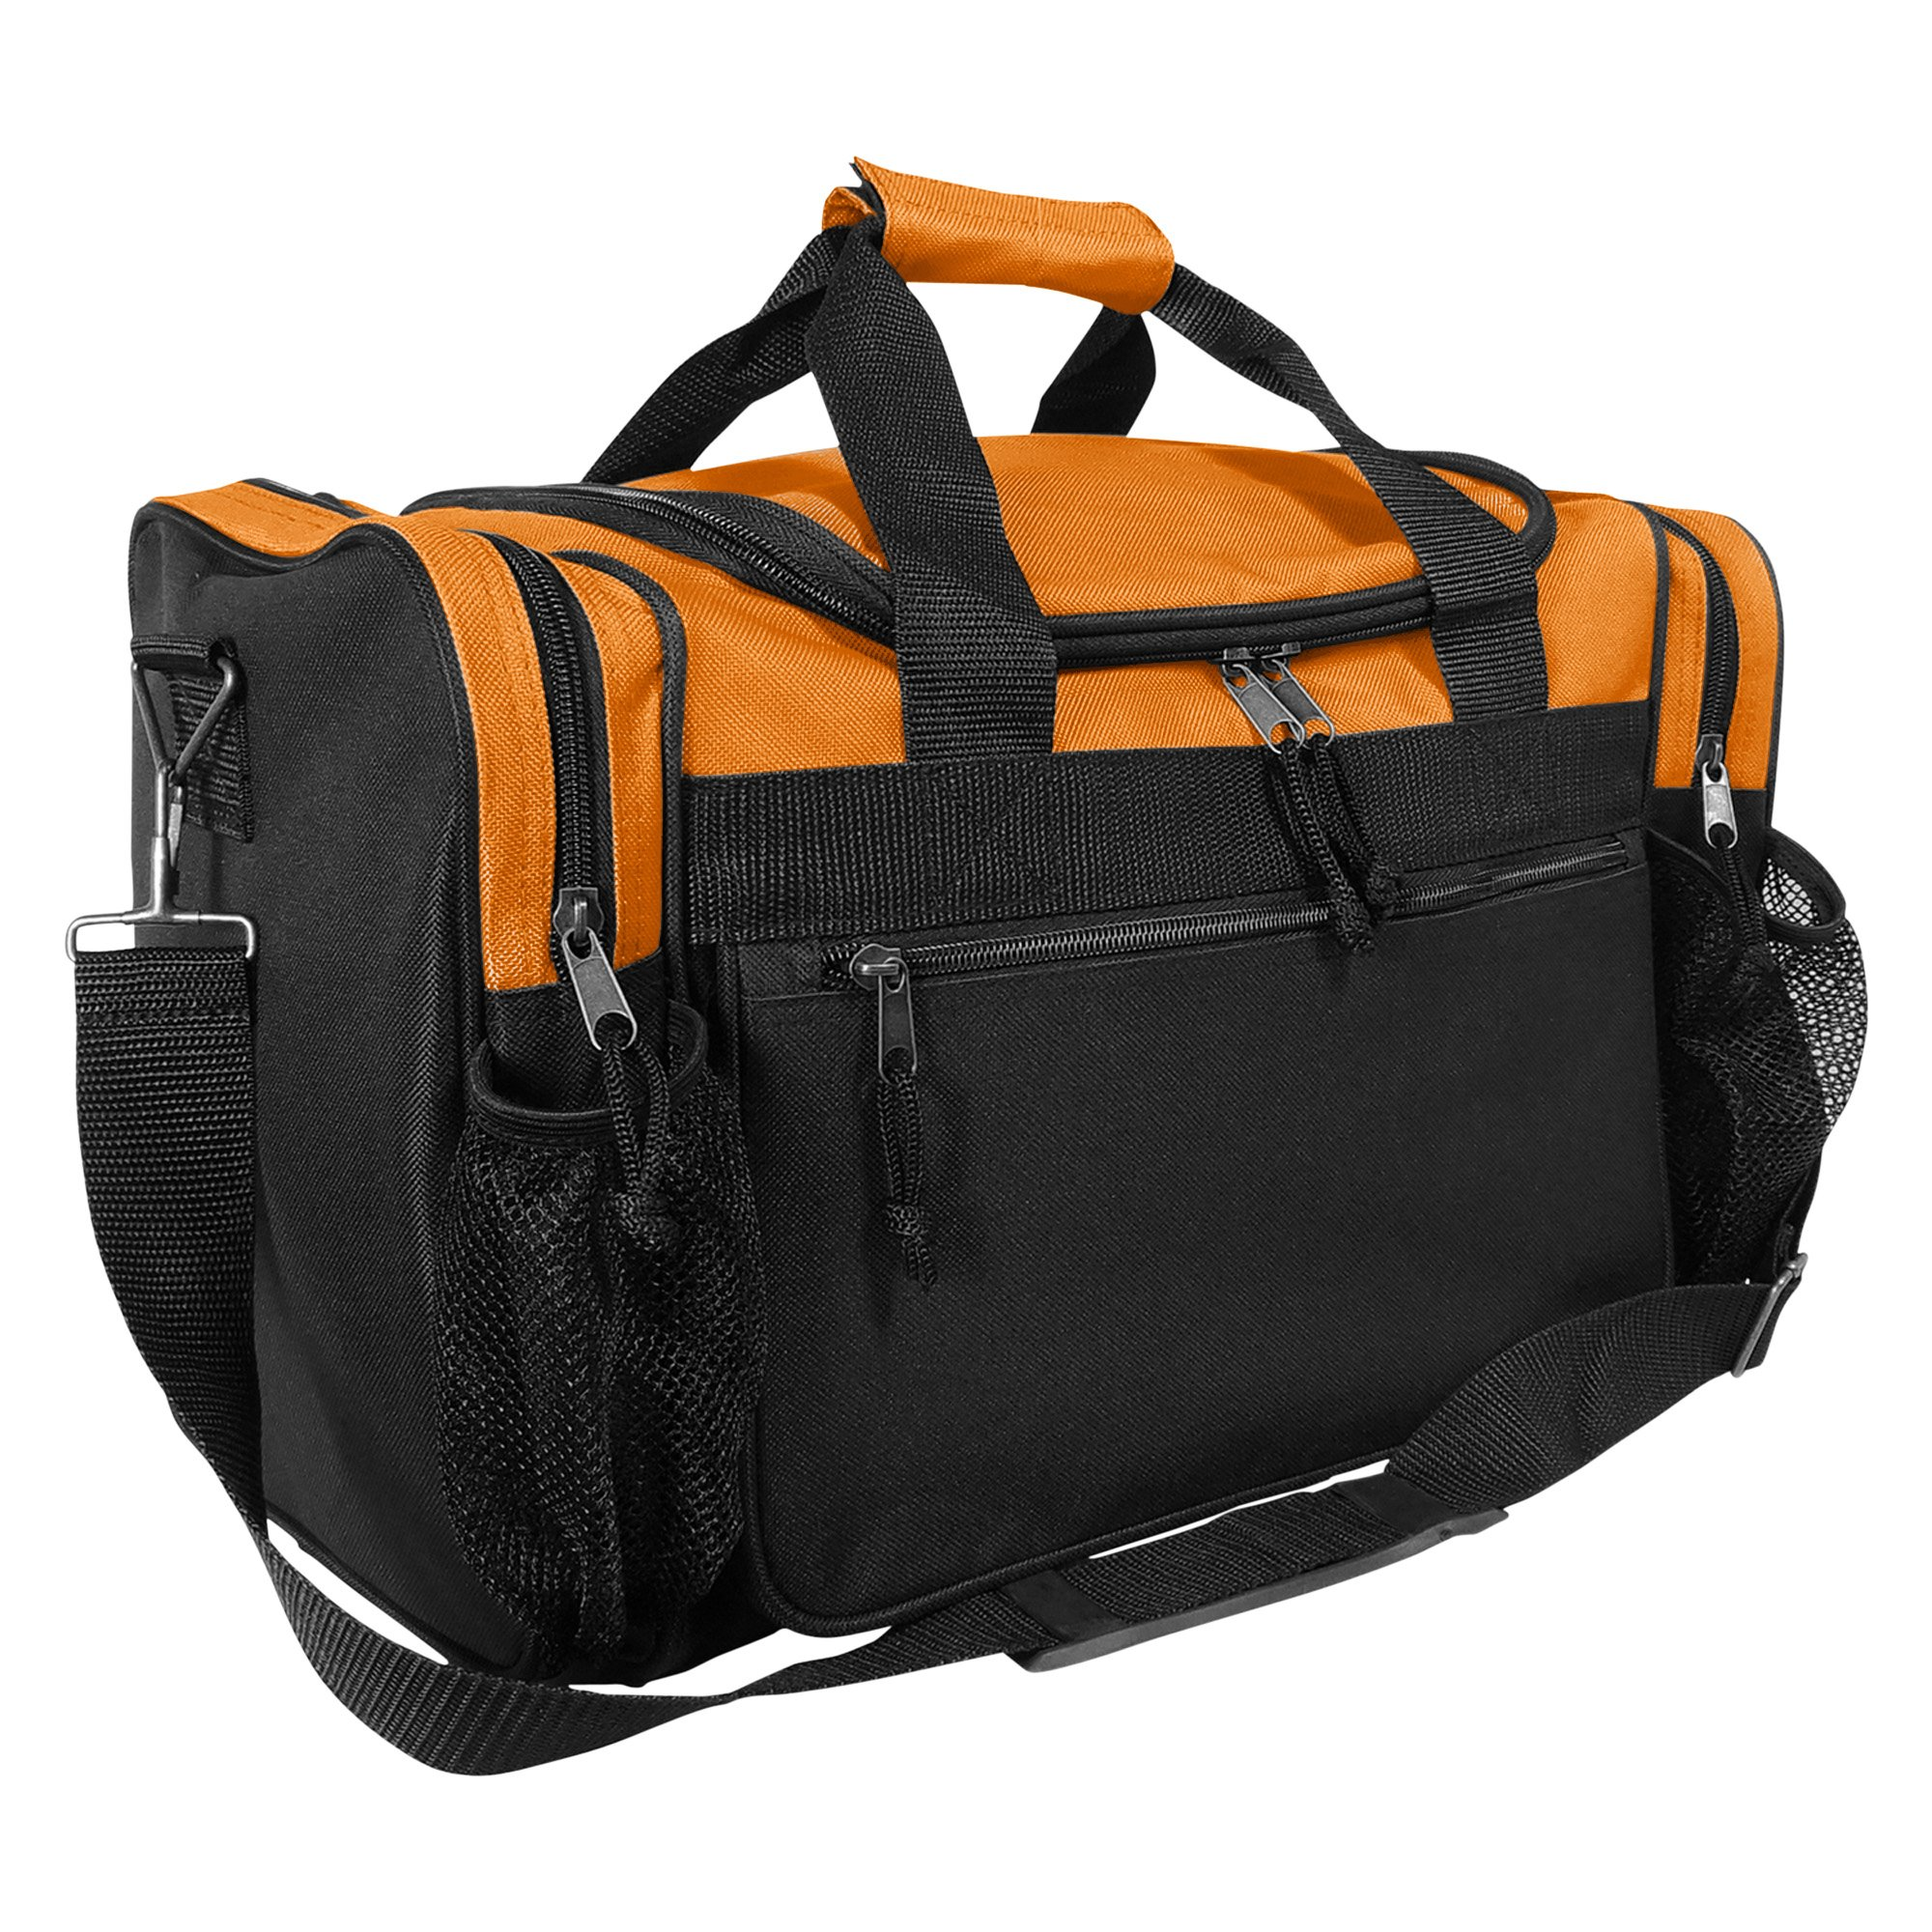 DALIX 17'' Duffle Bag Dual Front Mesh Pockets in Orange